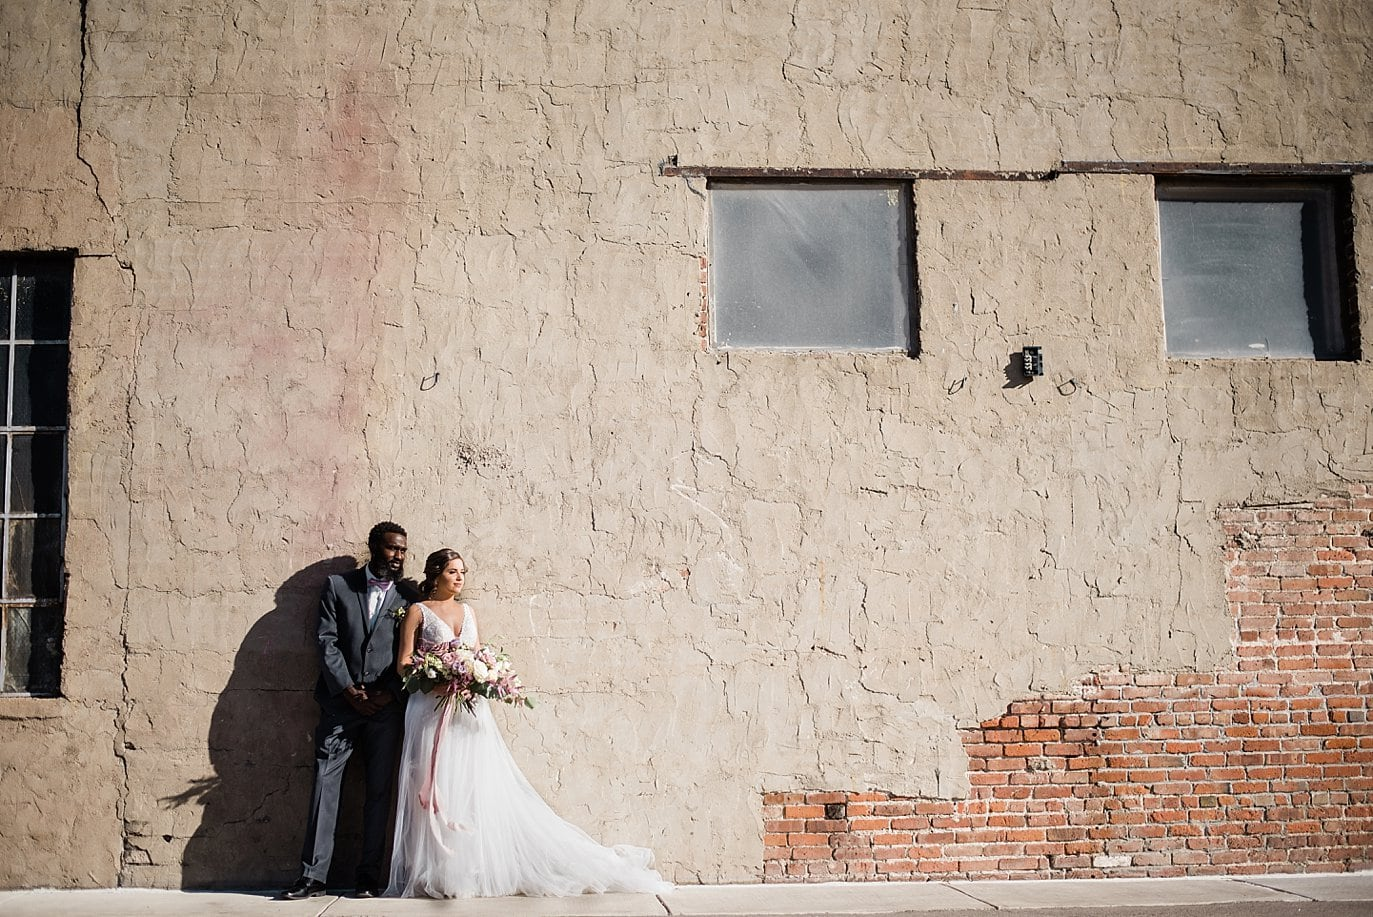 bride and groom by industrial stucco wall at Shyft Denver wedding by Boulder Wedding photographer Jennie Crate photographer